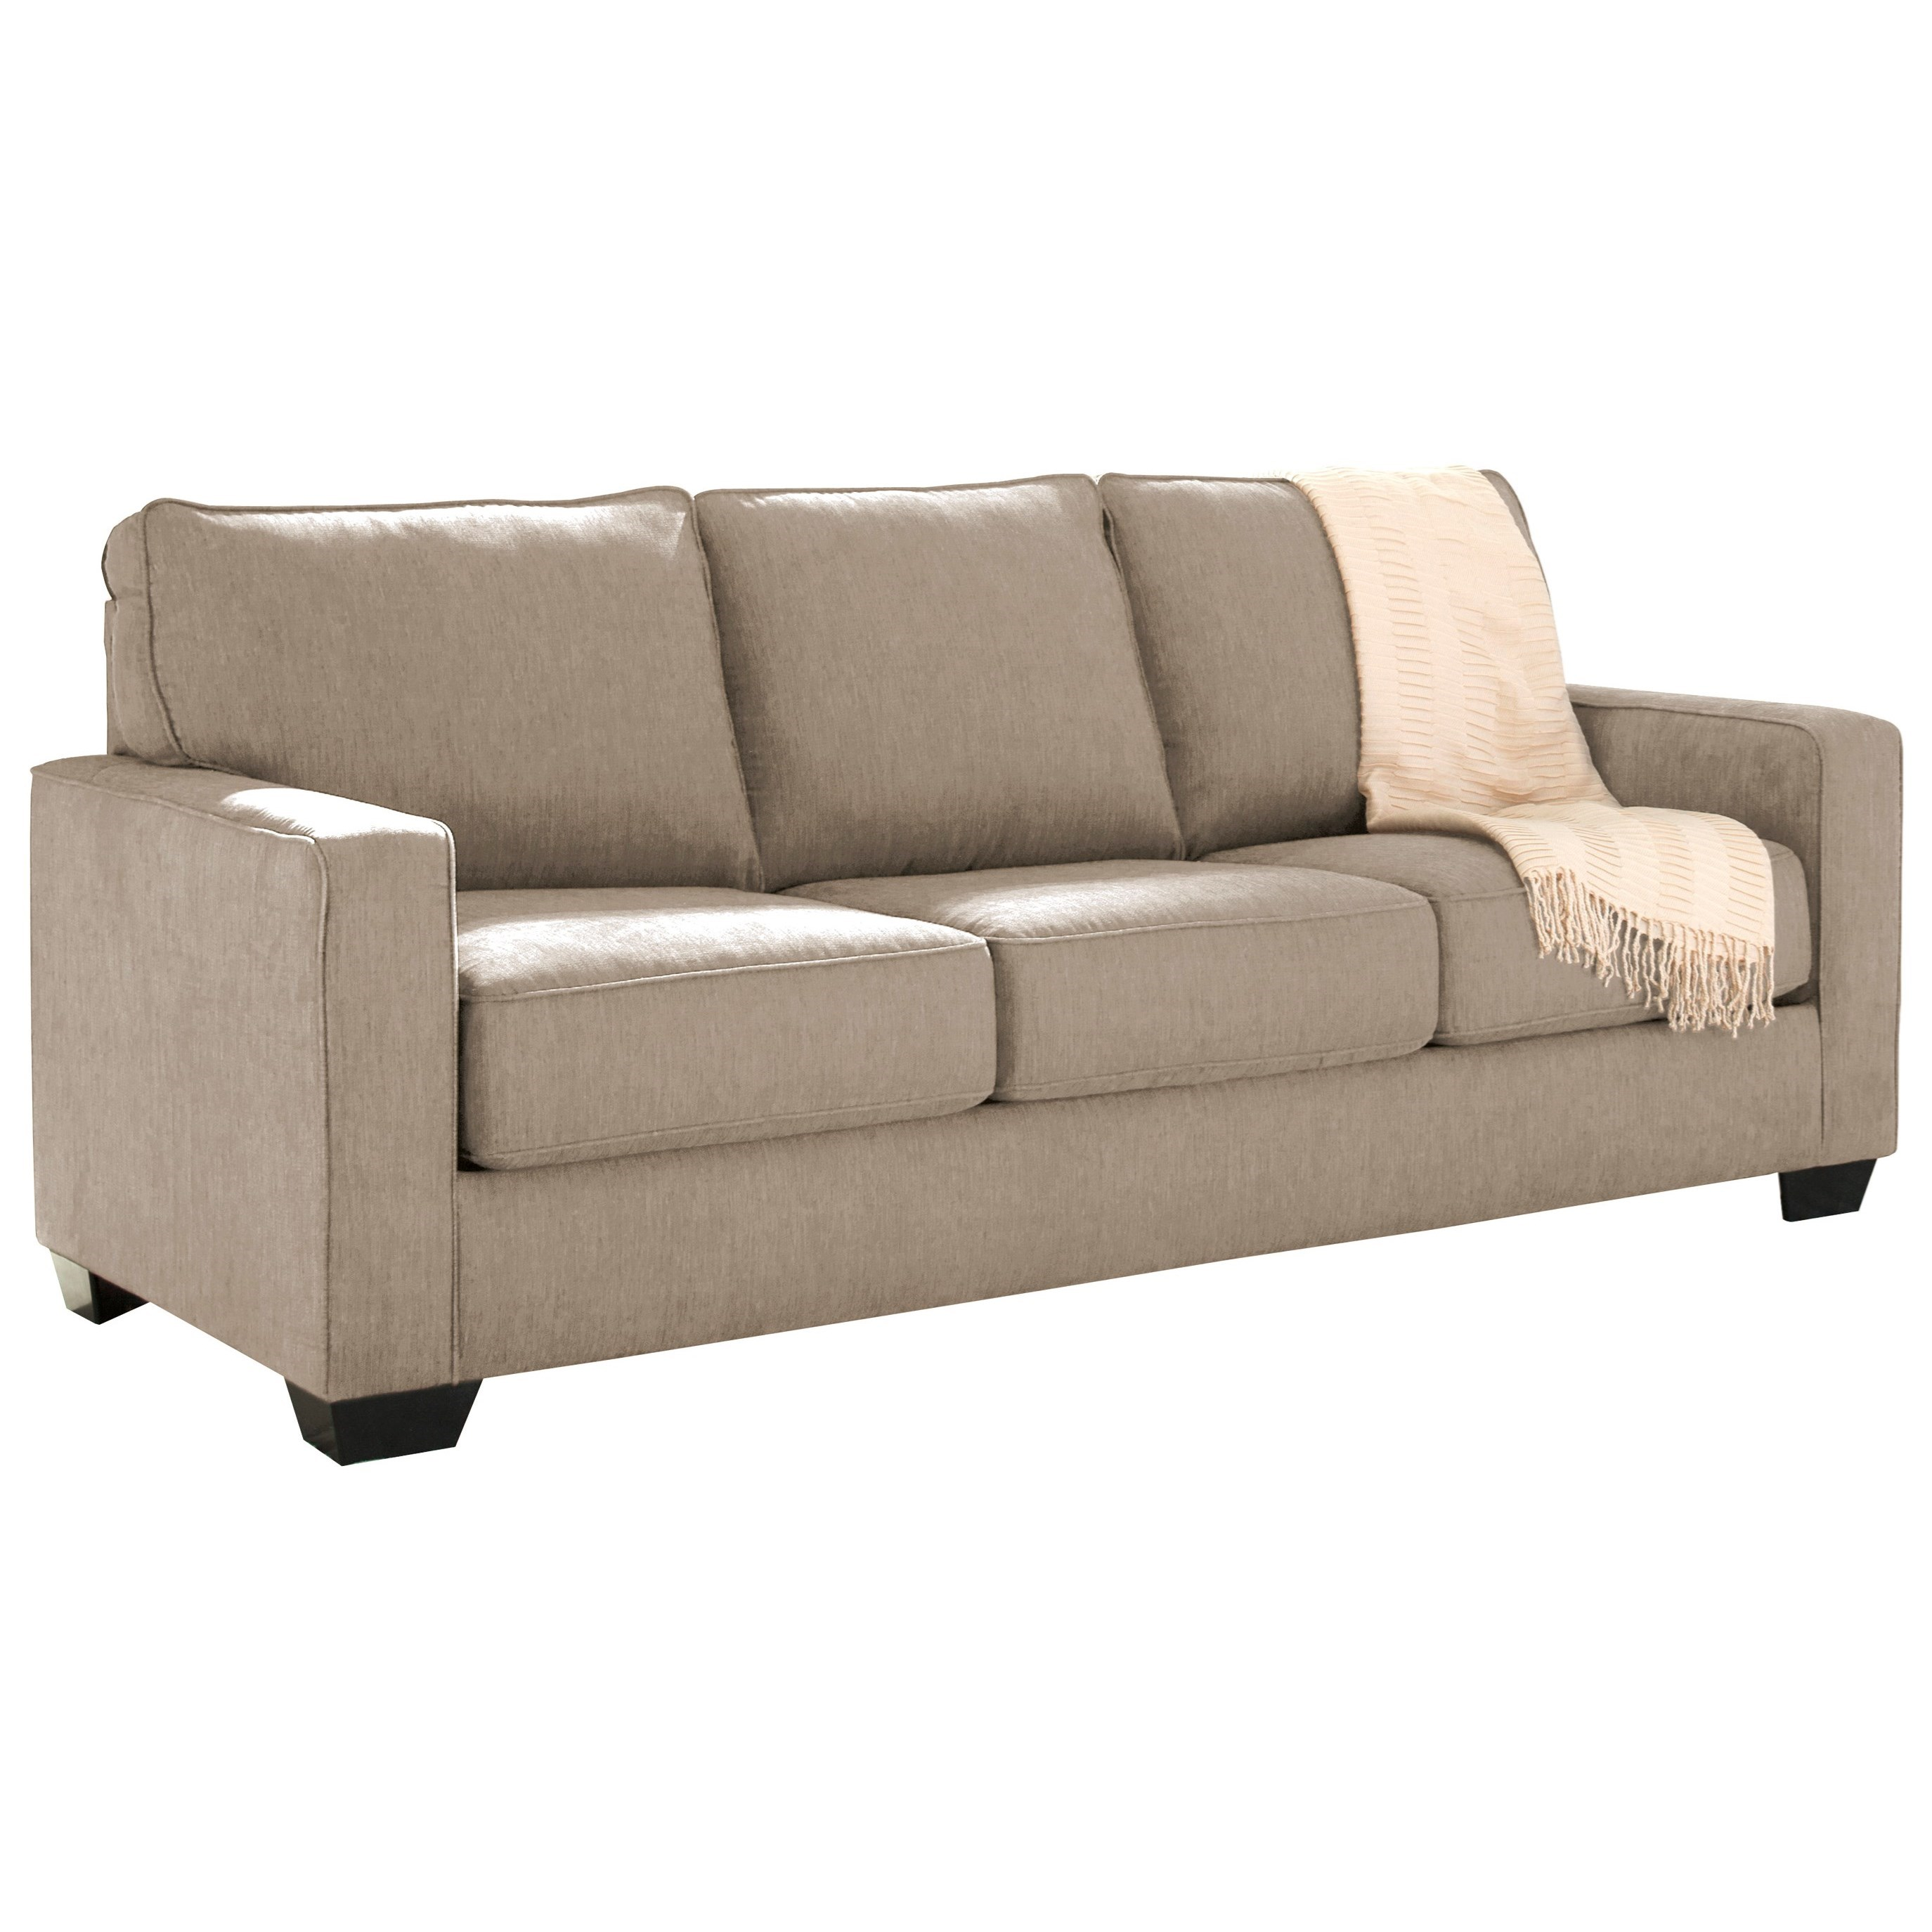 Couches Sleeper Zeb Queen Sofa Sleeper With Memory Foam Mattress By Signature Design By Ashley At Household Furniture